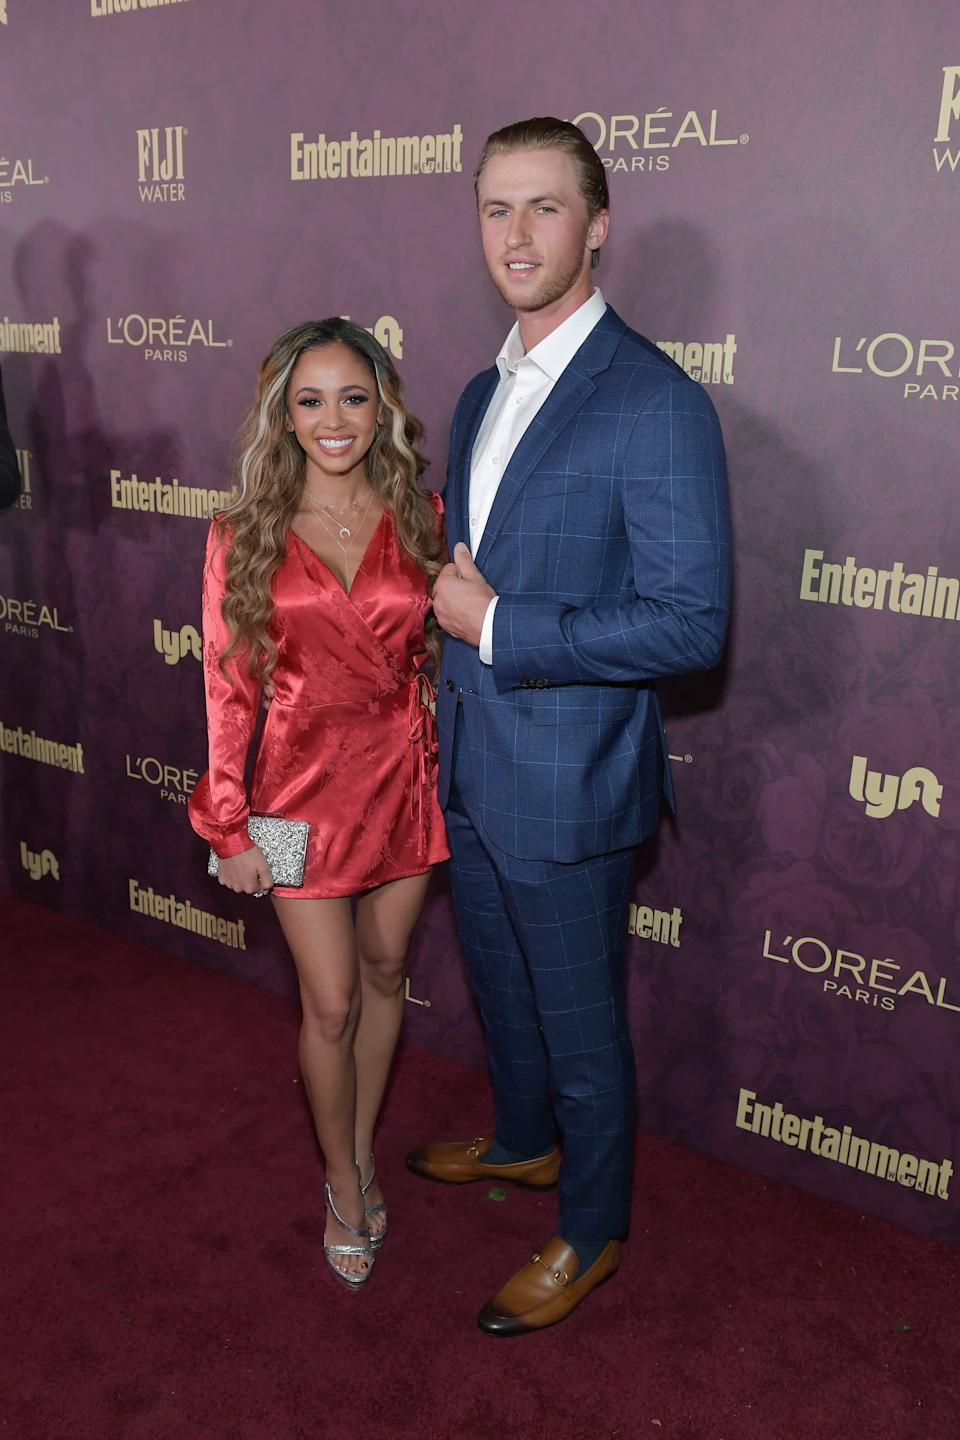 LOS ANGELES, CA - SEPTEMBER 15: Vanessa Morgan (L) and Michael Kopech attend the 2018 Pre-Emmy Party hosted by Entertainment Weekly and L'Oreal Paris at Sunset Tower on September 15, 2018 in Los Angeles, California. (Photo by Neilson Barnard/Getty Images for Entertainment Weekly)